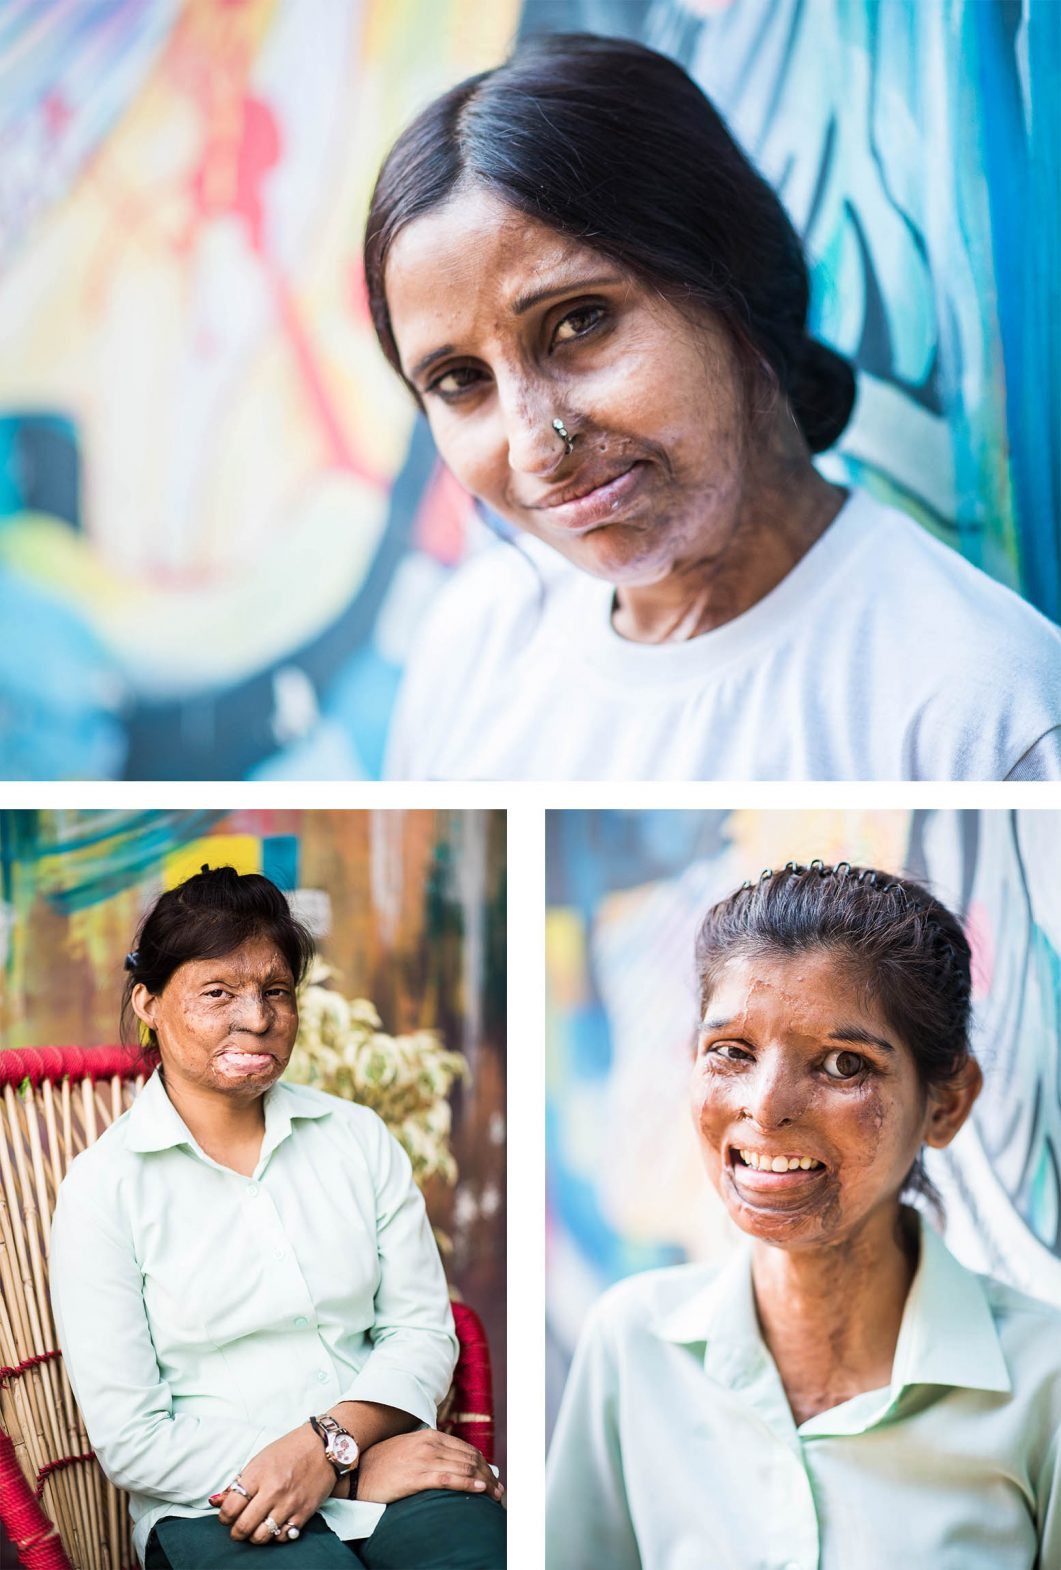 Portraits of staff at Sheroes Hangout, Agra, India.